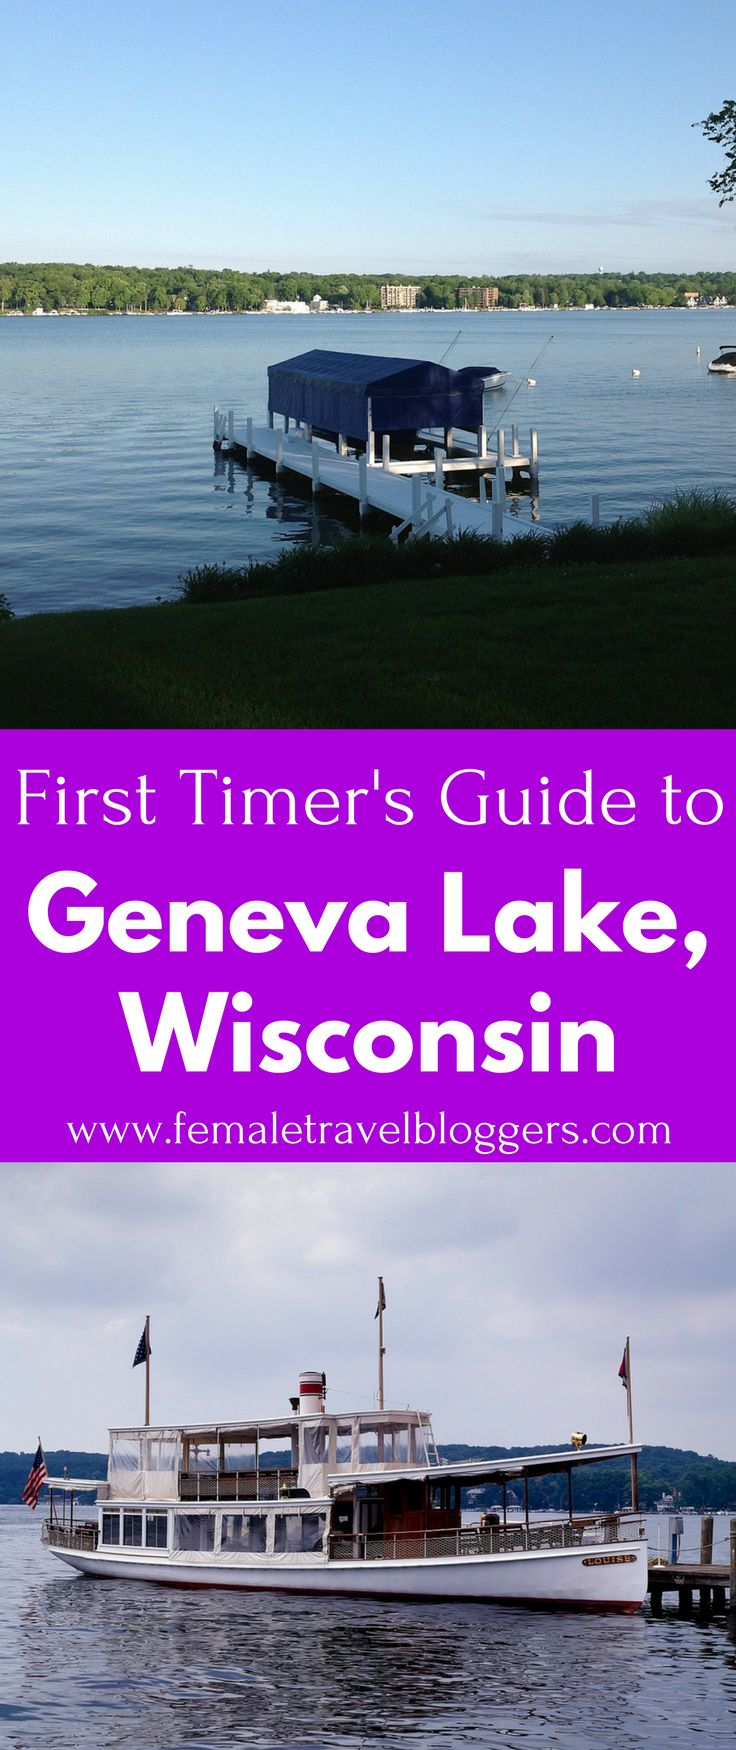 Geneva Lake is a beautiful beach destination in the USA. If you're looking for a vacation spot in the USA, Geneva Lake is a beautiful one. This Geneva Lake guide includes places to stay in Geneva Lake, things to do in Geneva Lake, restaurants to try in Geneva Lake, and much more. Save this helpful Wisconsin travel guide to your travel board so you can find it later!